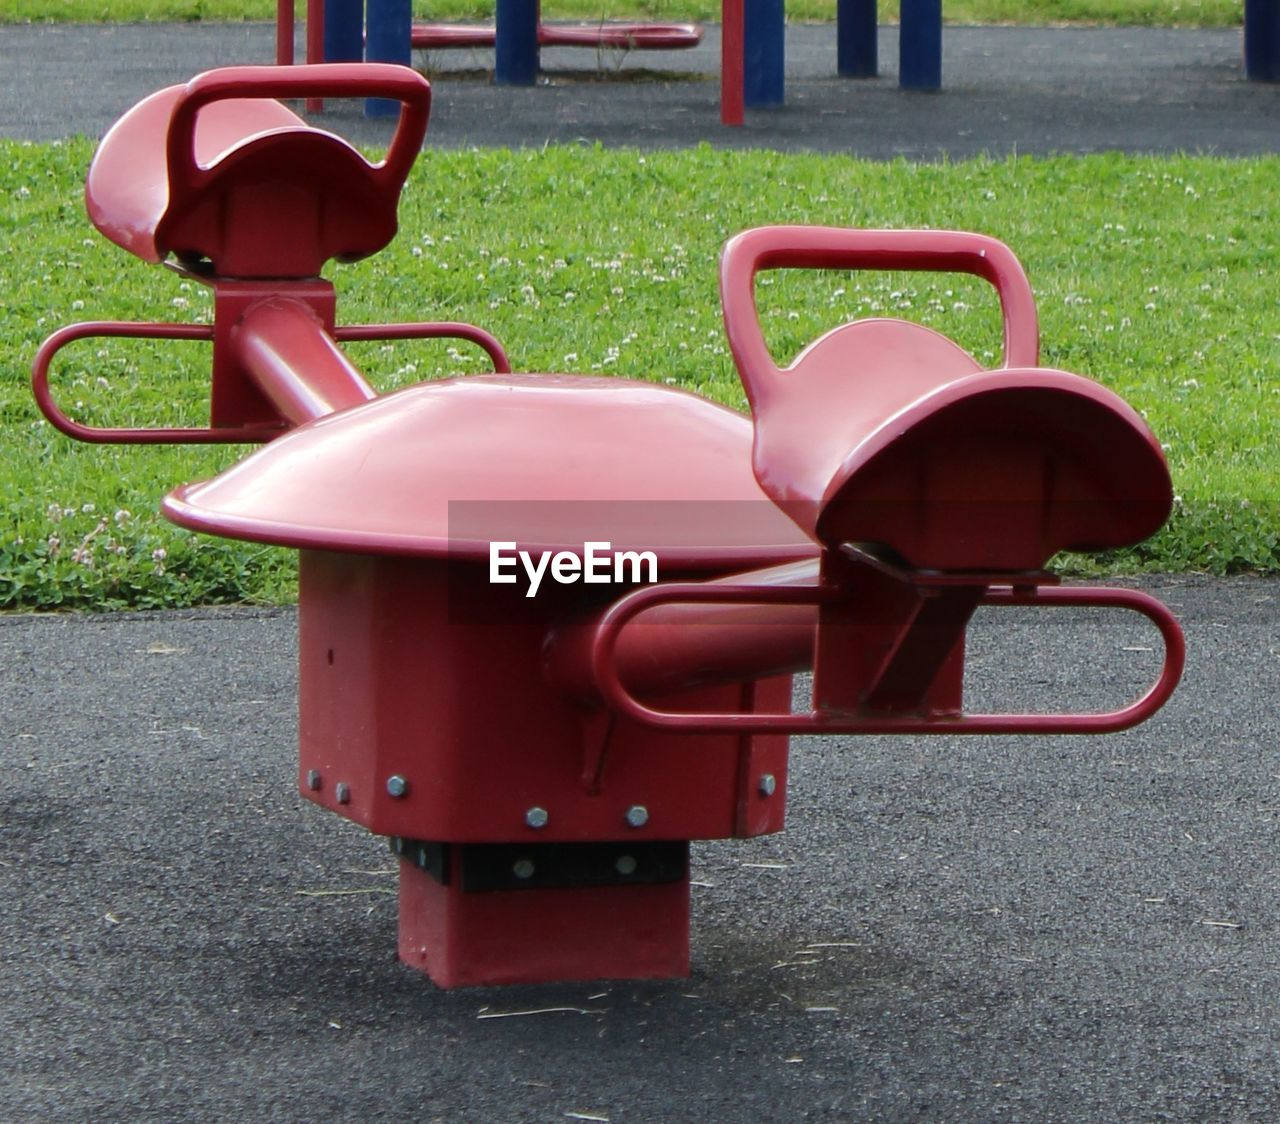 day, red, no people, empty, metal, nature, grass, green color, absence, outdoors, playground, plastic, park, plant, sunlight, seat, mailbox, park - man made space, pink color, outdoor play equipment